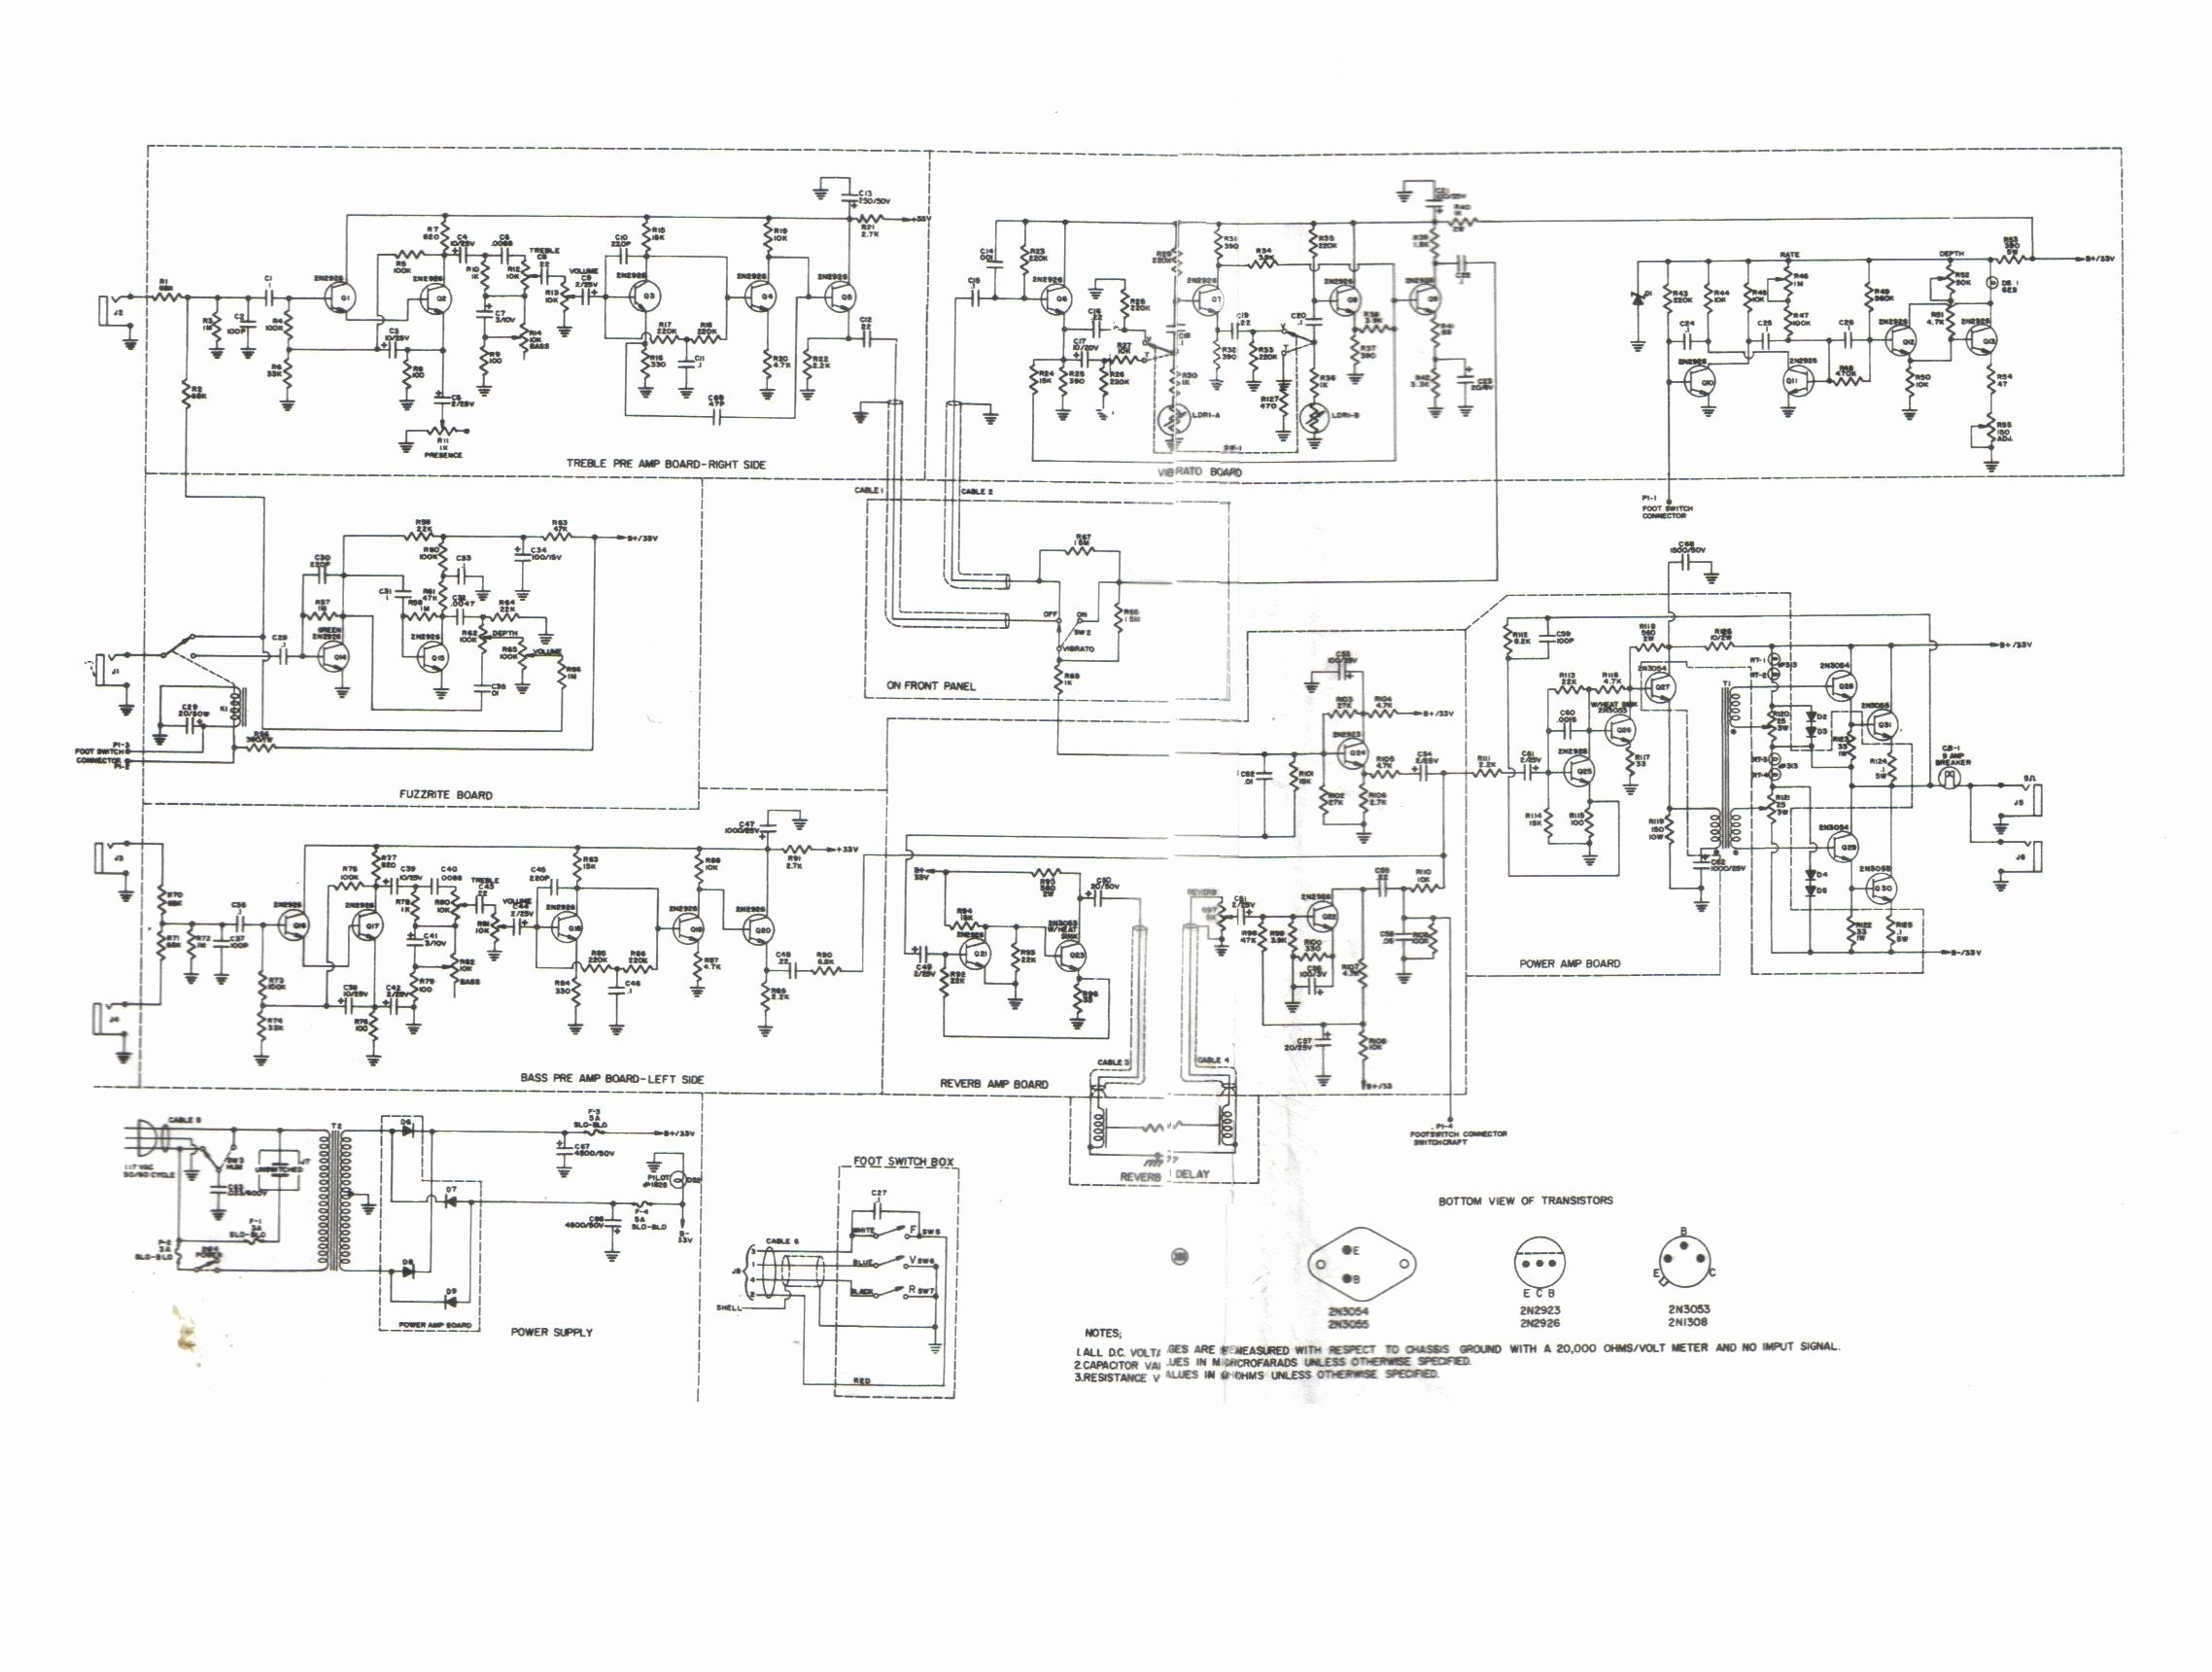 Mosrite Guitar Wiring Diagram String Chart Designs Bass On Diagrams Telecaster Electric Fuzzrite Schematic Image Fender Nashville